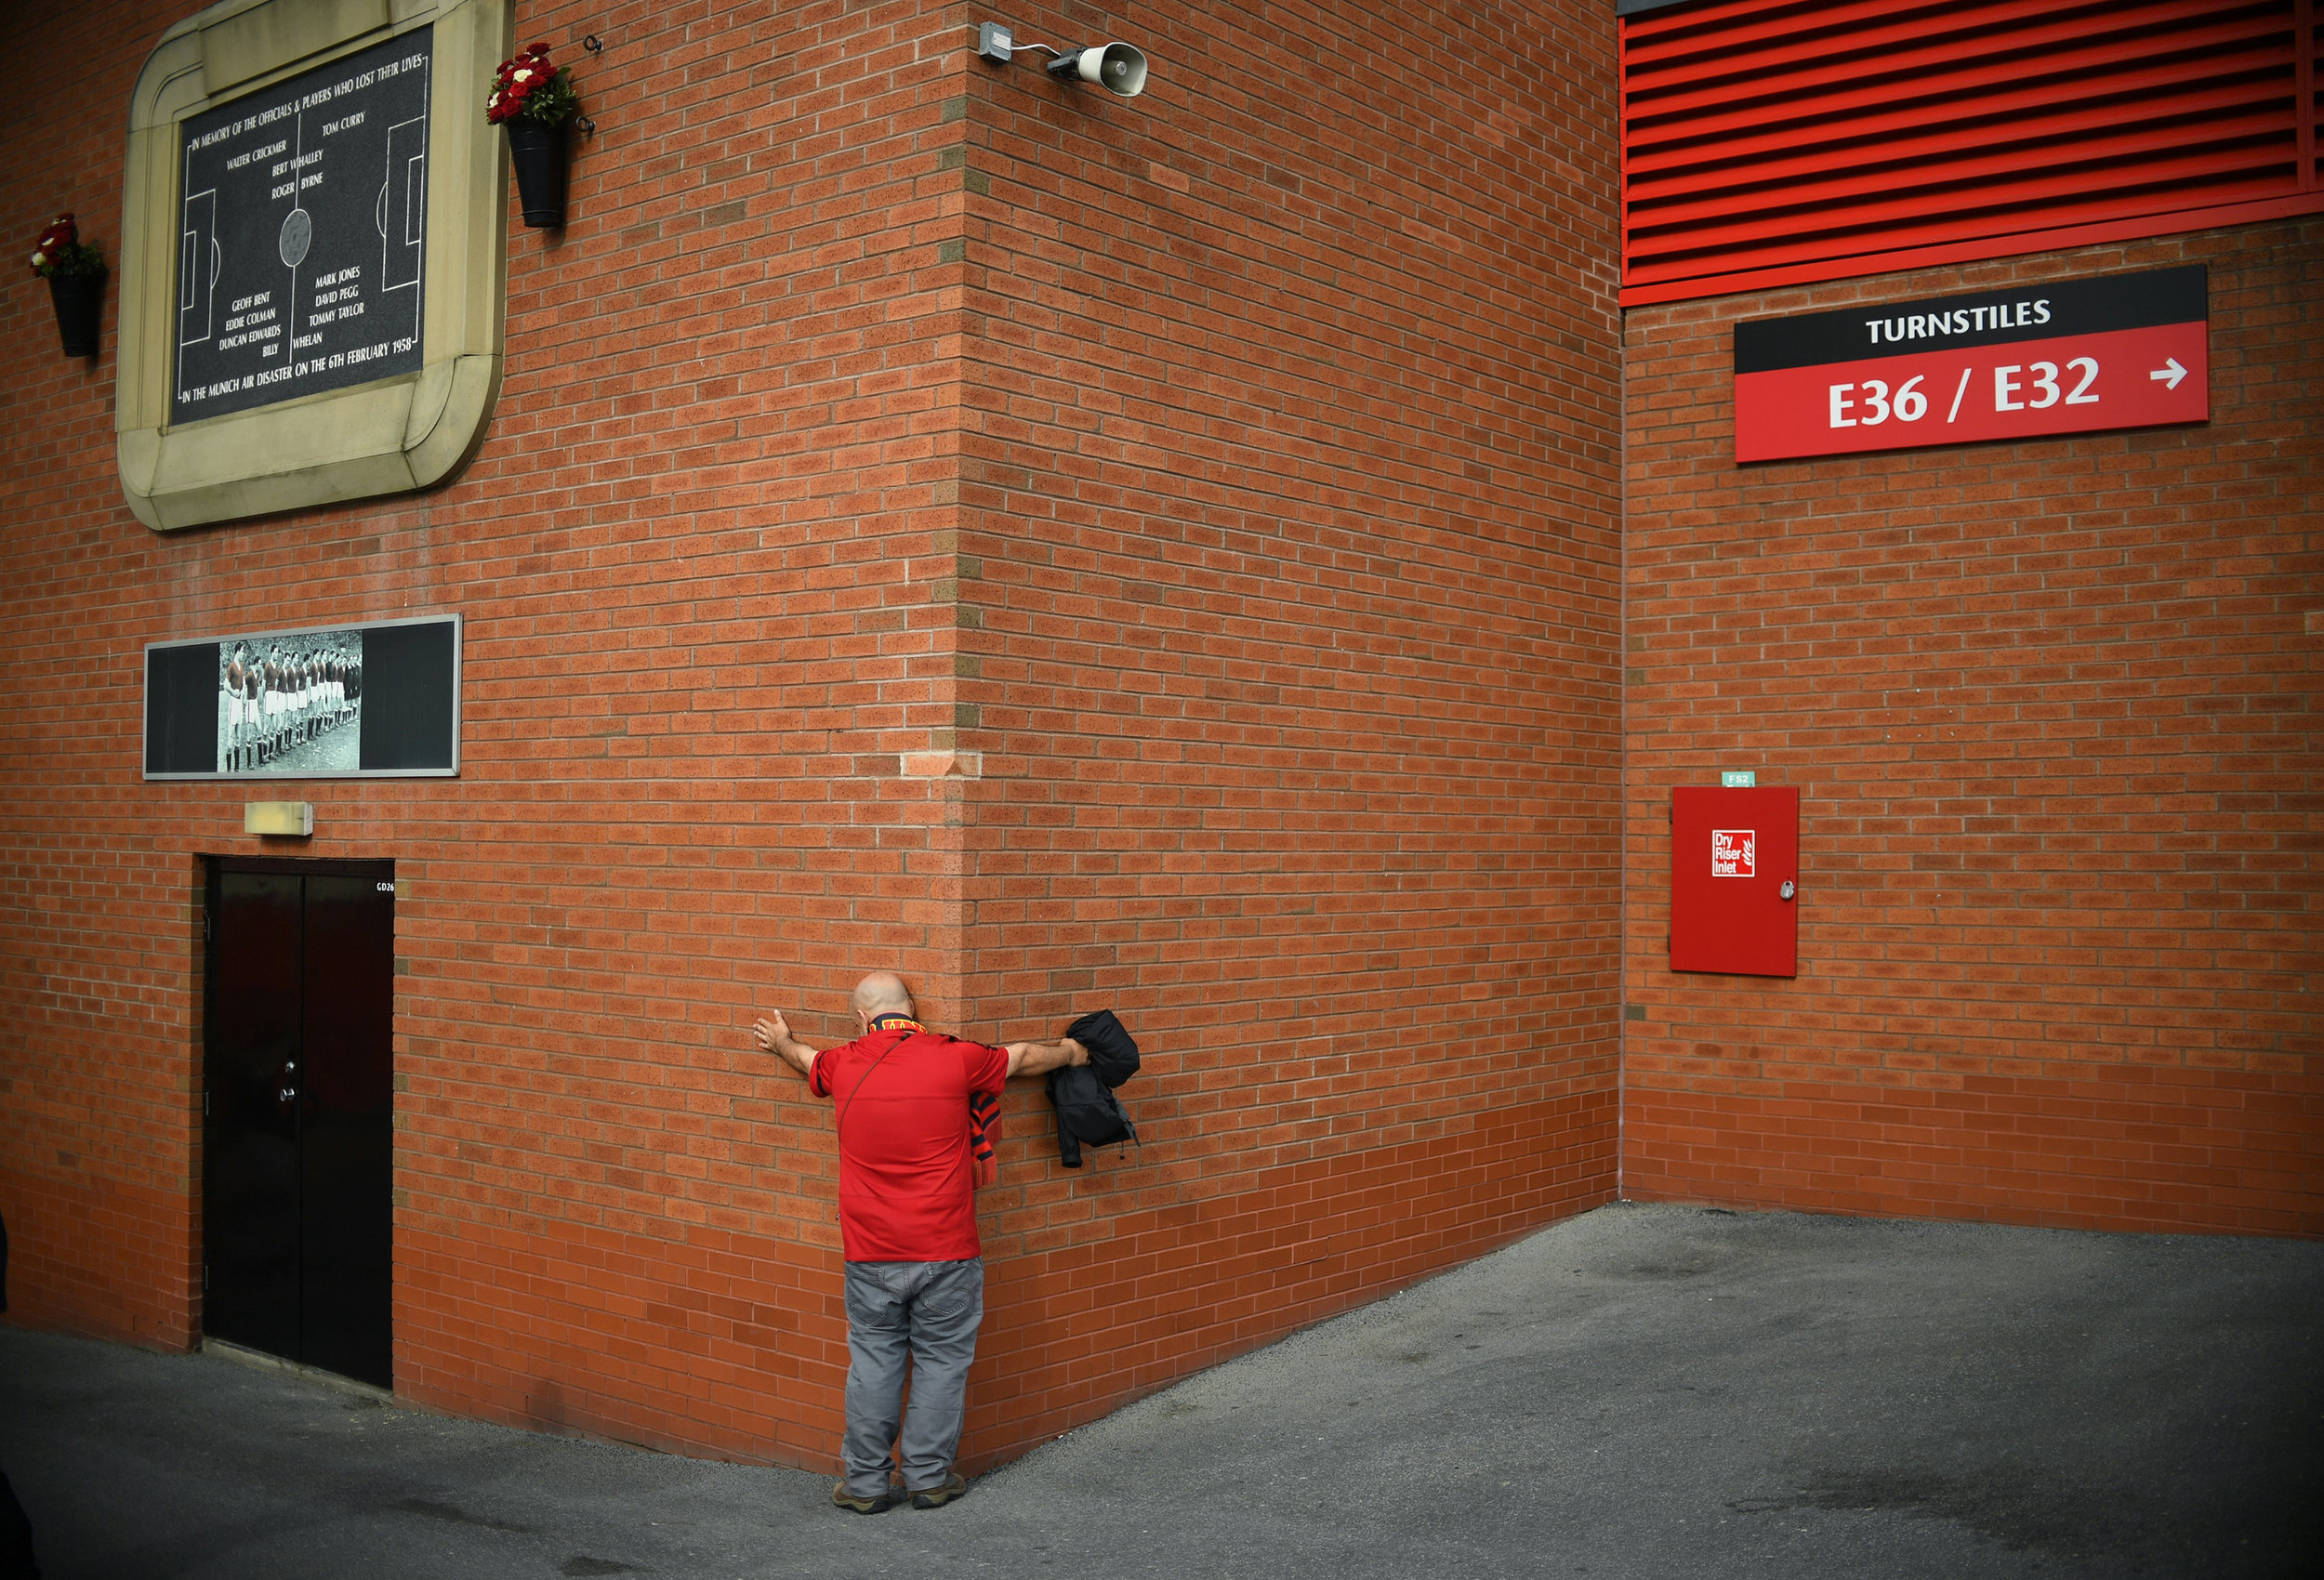 A Manchester United fan embraces the side of the Old Trafford stadium ahead of the Premier League football match between Manchester United and Leicester City.Photo by Anthony Devlin  24 September 2016